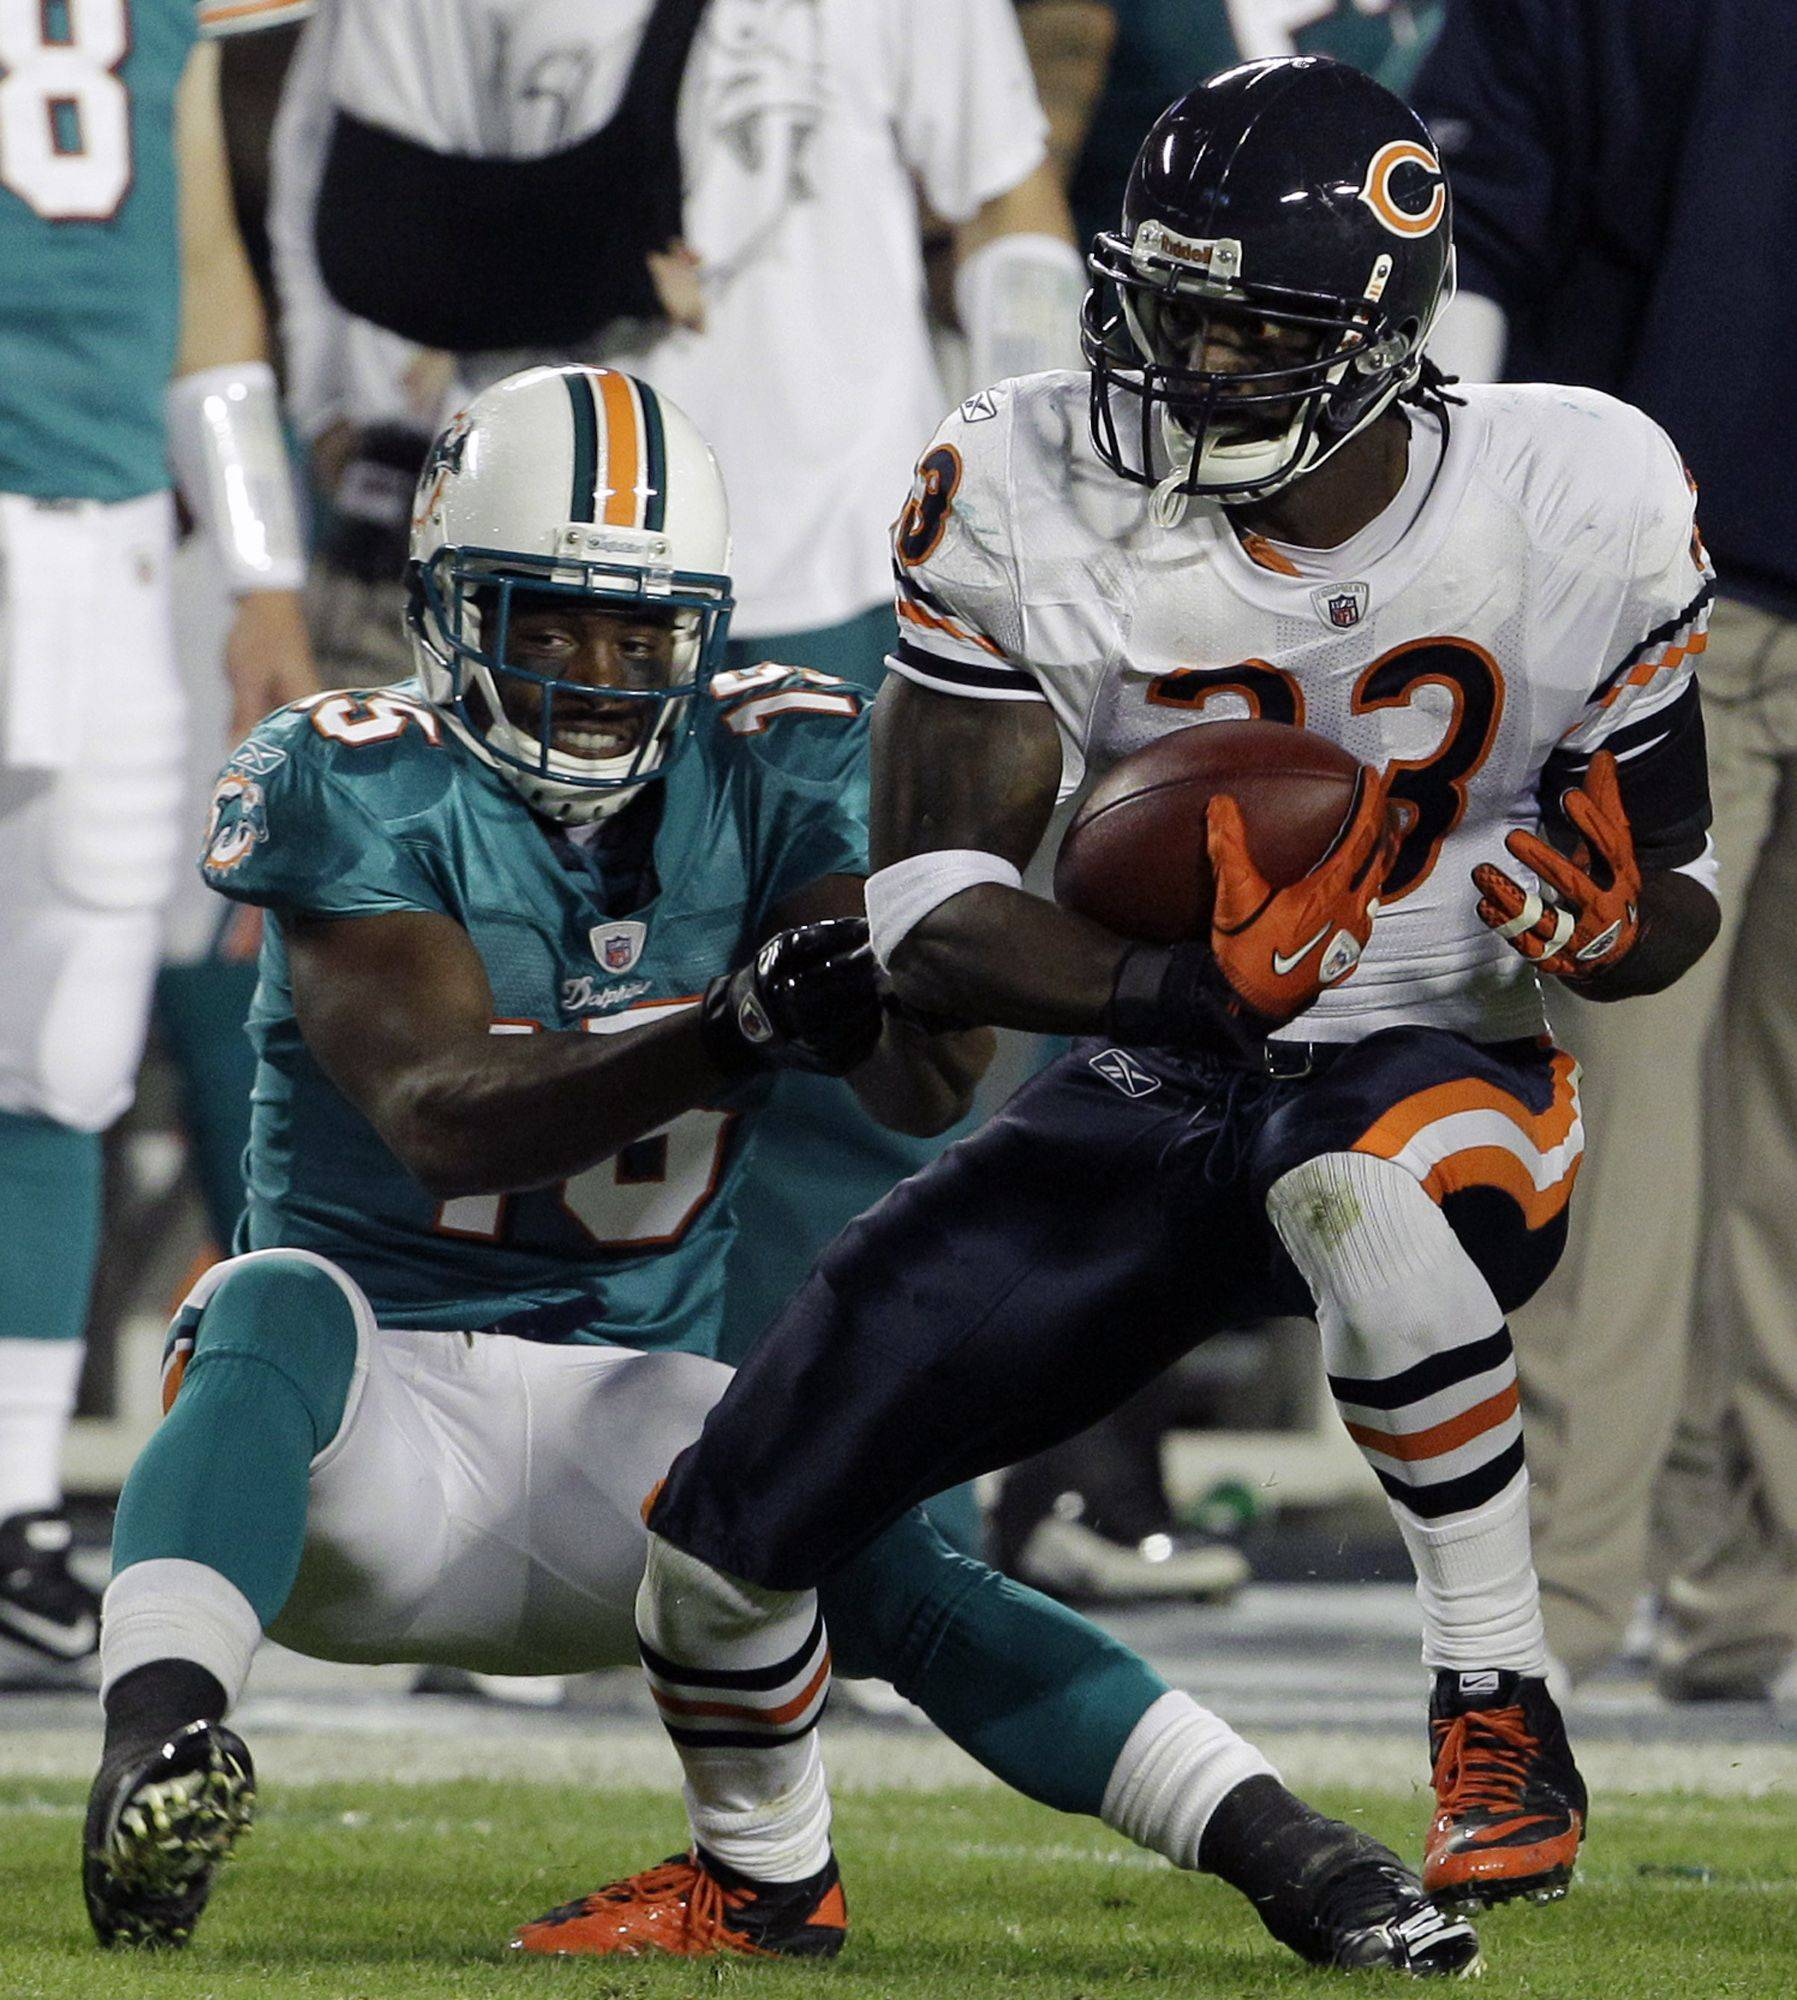 Chicago Bears cornerback Charles Tillman, right, is taken down by Miami Dolphins wide receiver Davone Bess after intercepting a pass during the first quarter.